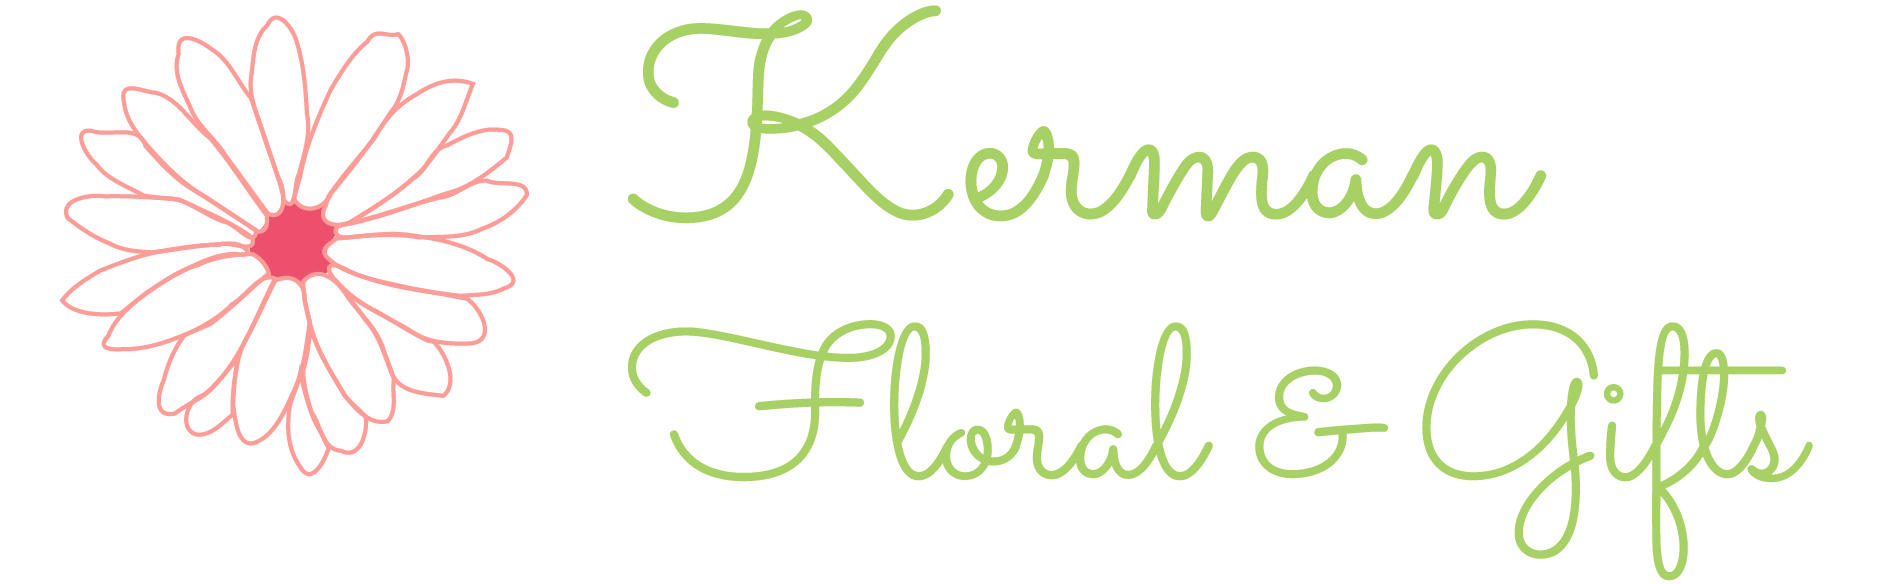 Kerman Floral & Gifts - Flower Delivery in Kerman, CA